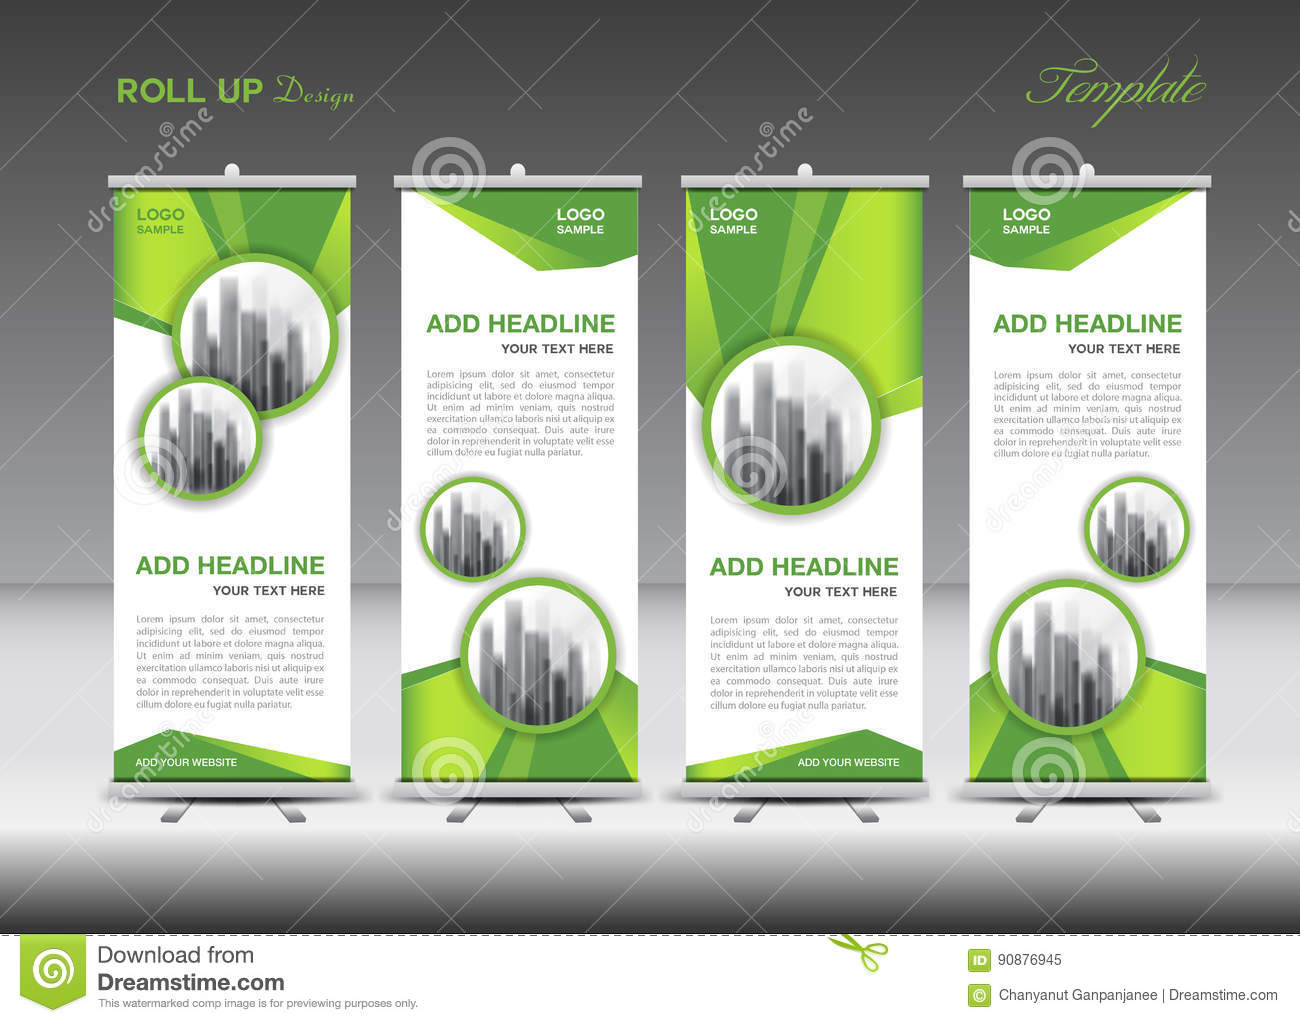 Green And White Roll Up Banner Template Design Stock Vector Illustration Of Geometric